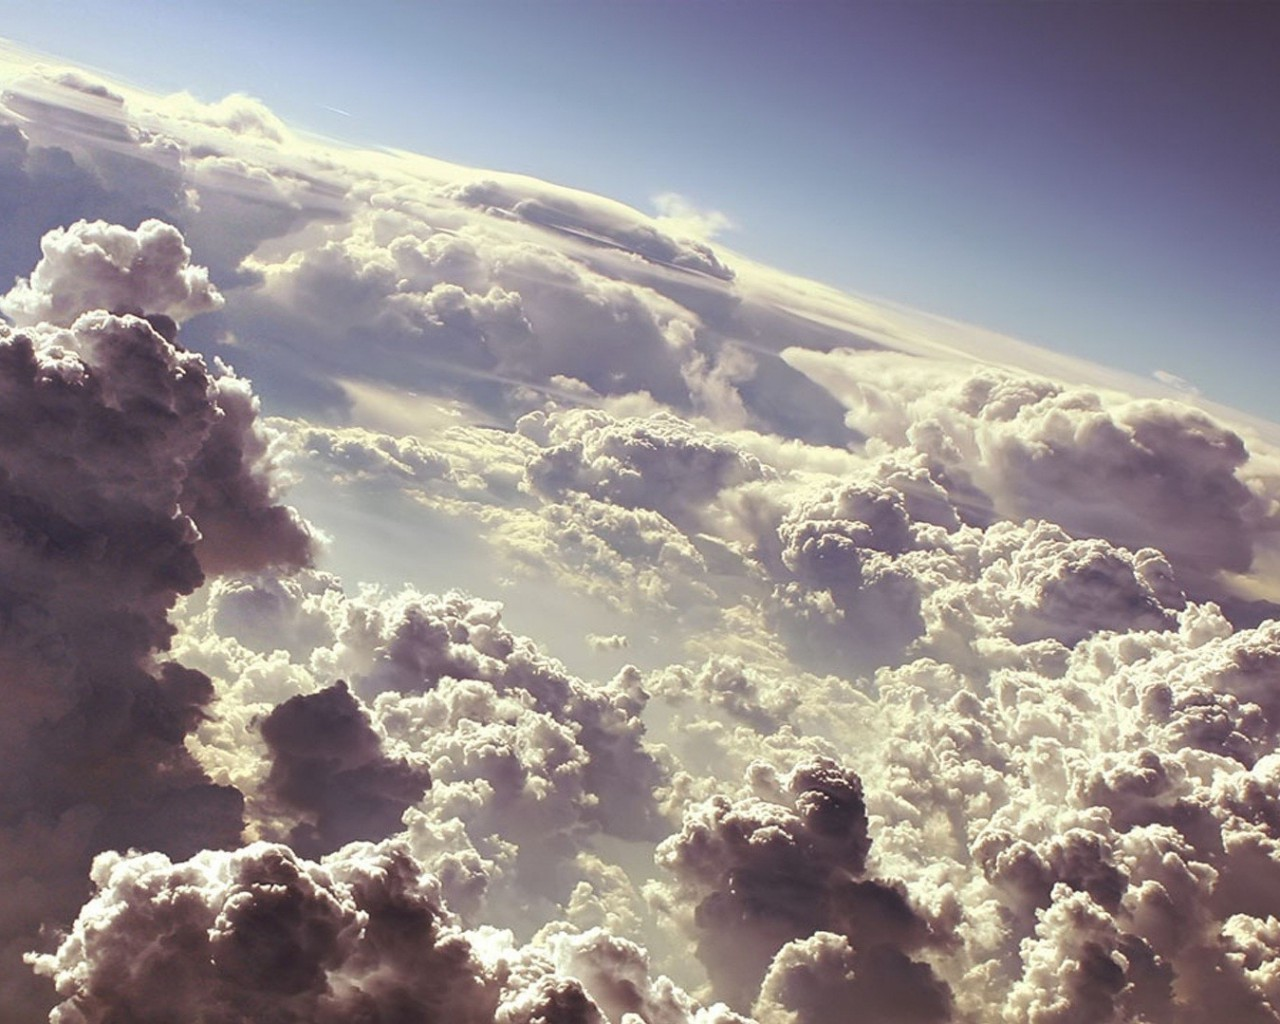 50080 download wallpaper Landscape, Sky screensavers and pictures for free